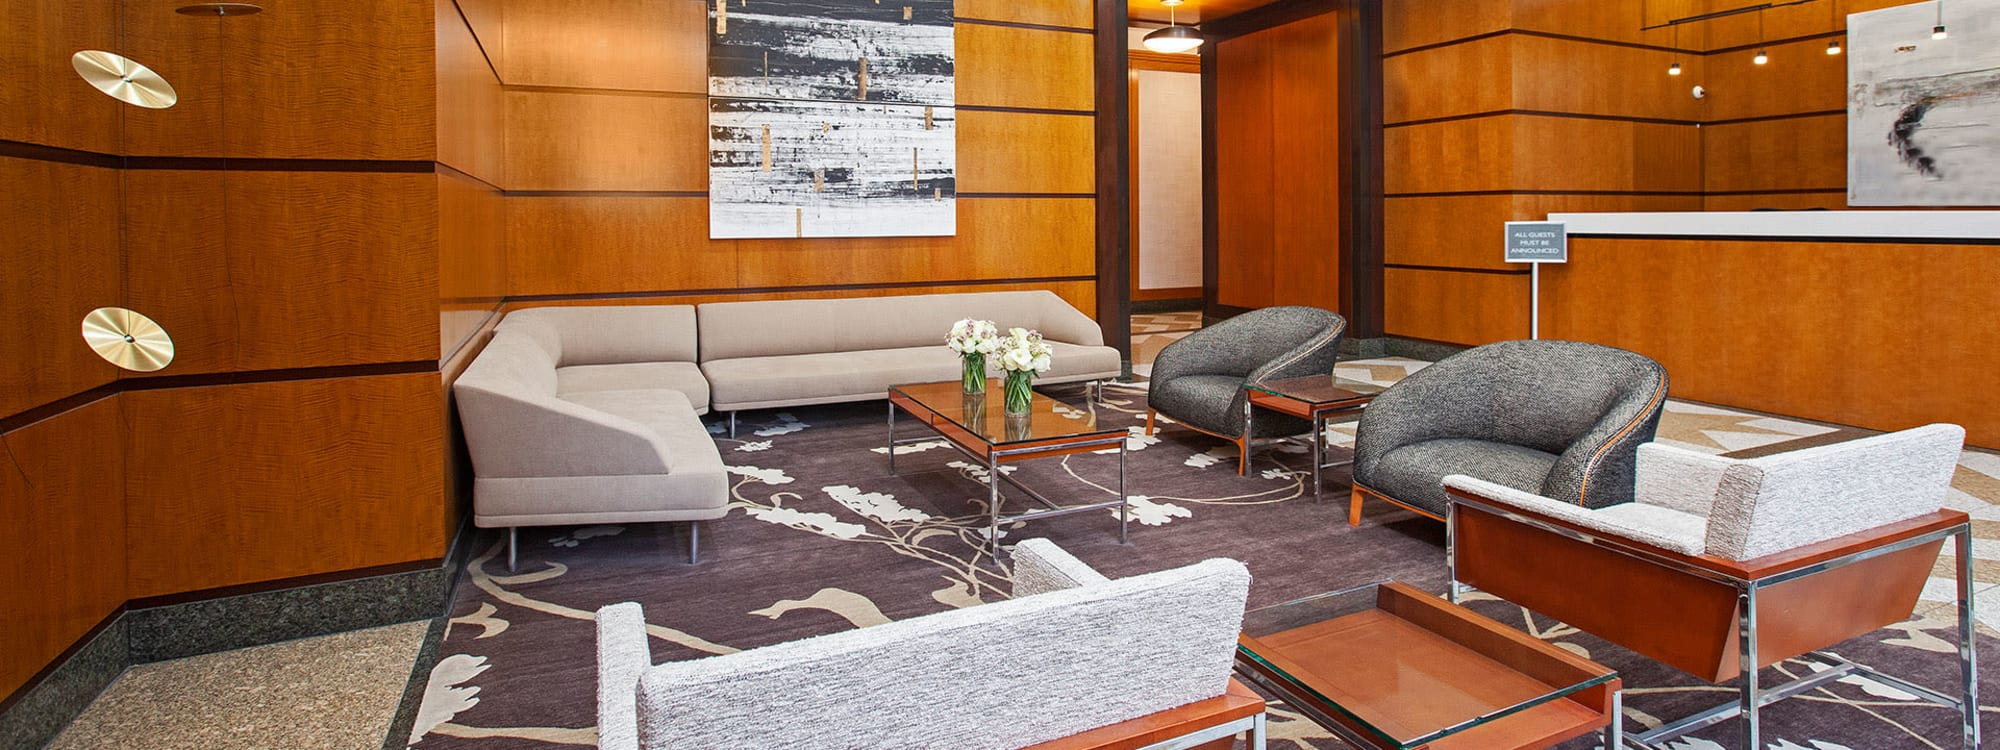 Schedule a tour at The Ventura in New York, New York